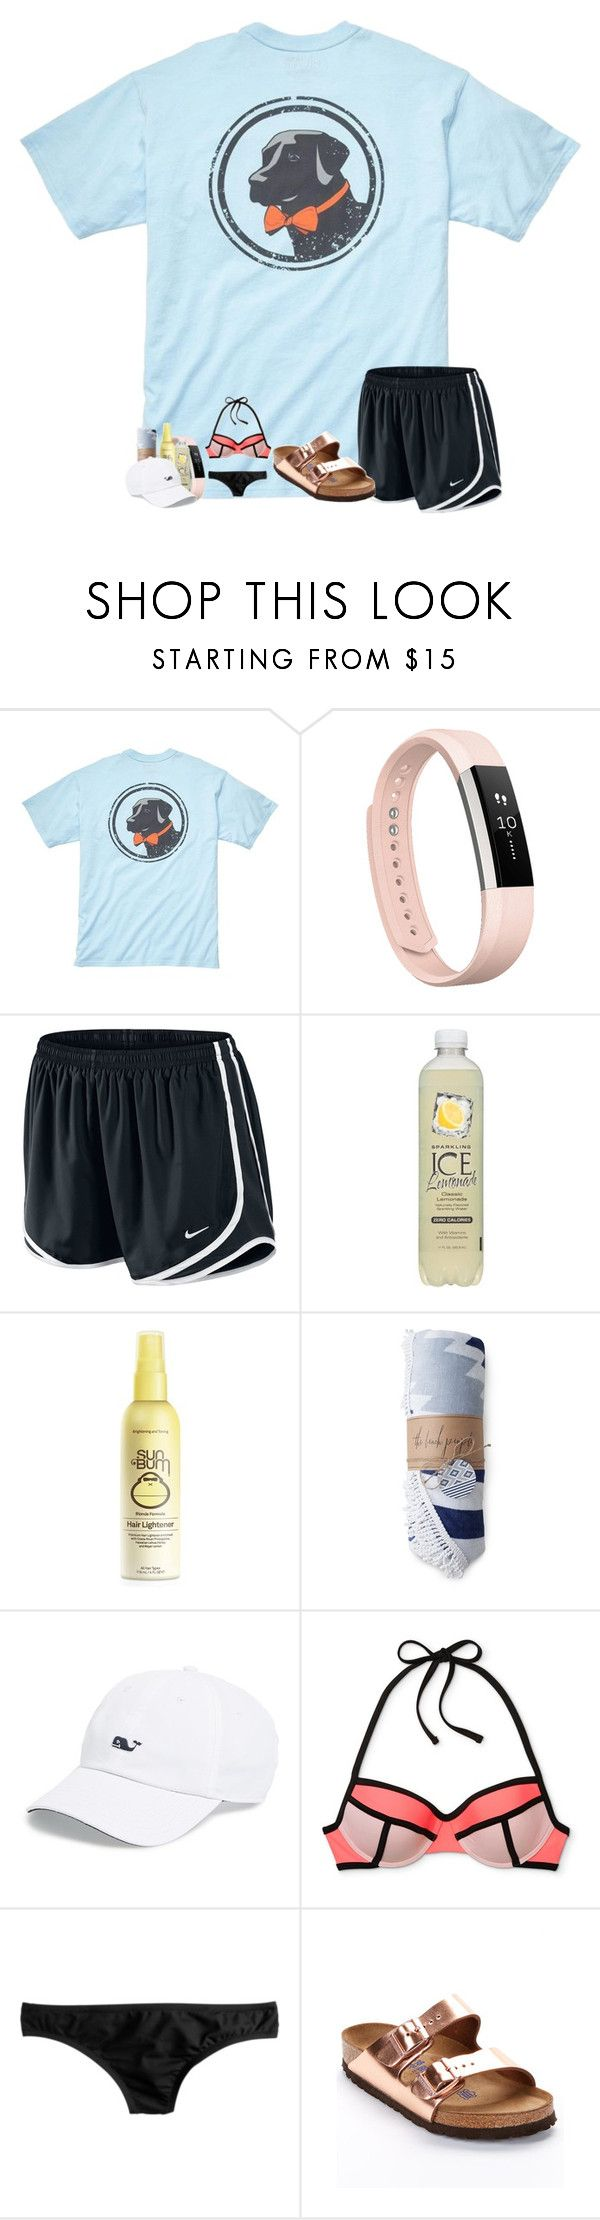 """""""Untitled #194"""" by ajgswim ❤ liked on Polyvore featuring Southern Proper, Fitbit, NIKE, Forever 21, Vineyard Vines, J.Crew, Birkenstock and AbbypjsSummerContest"""